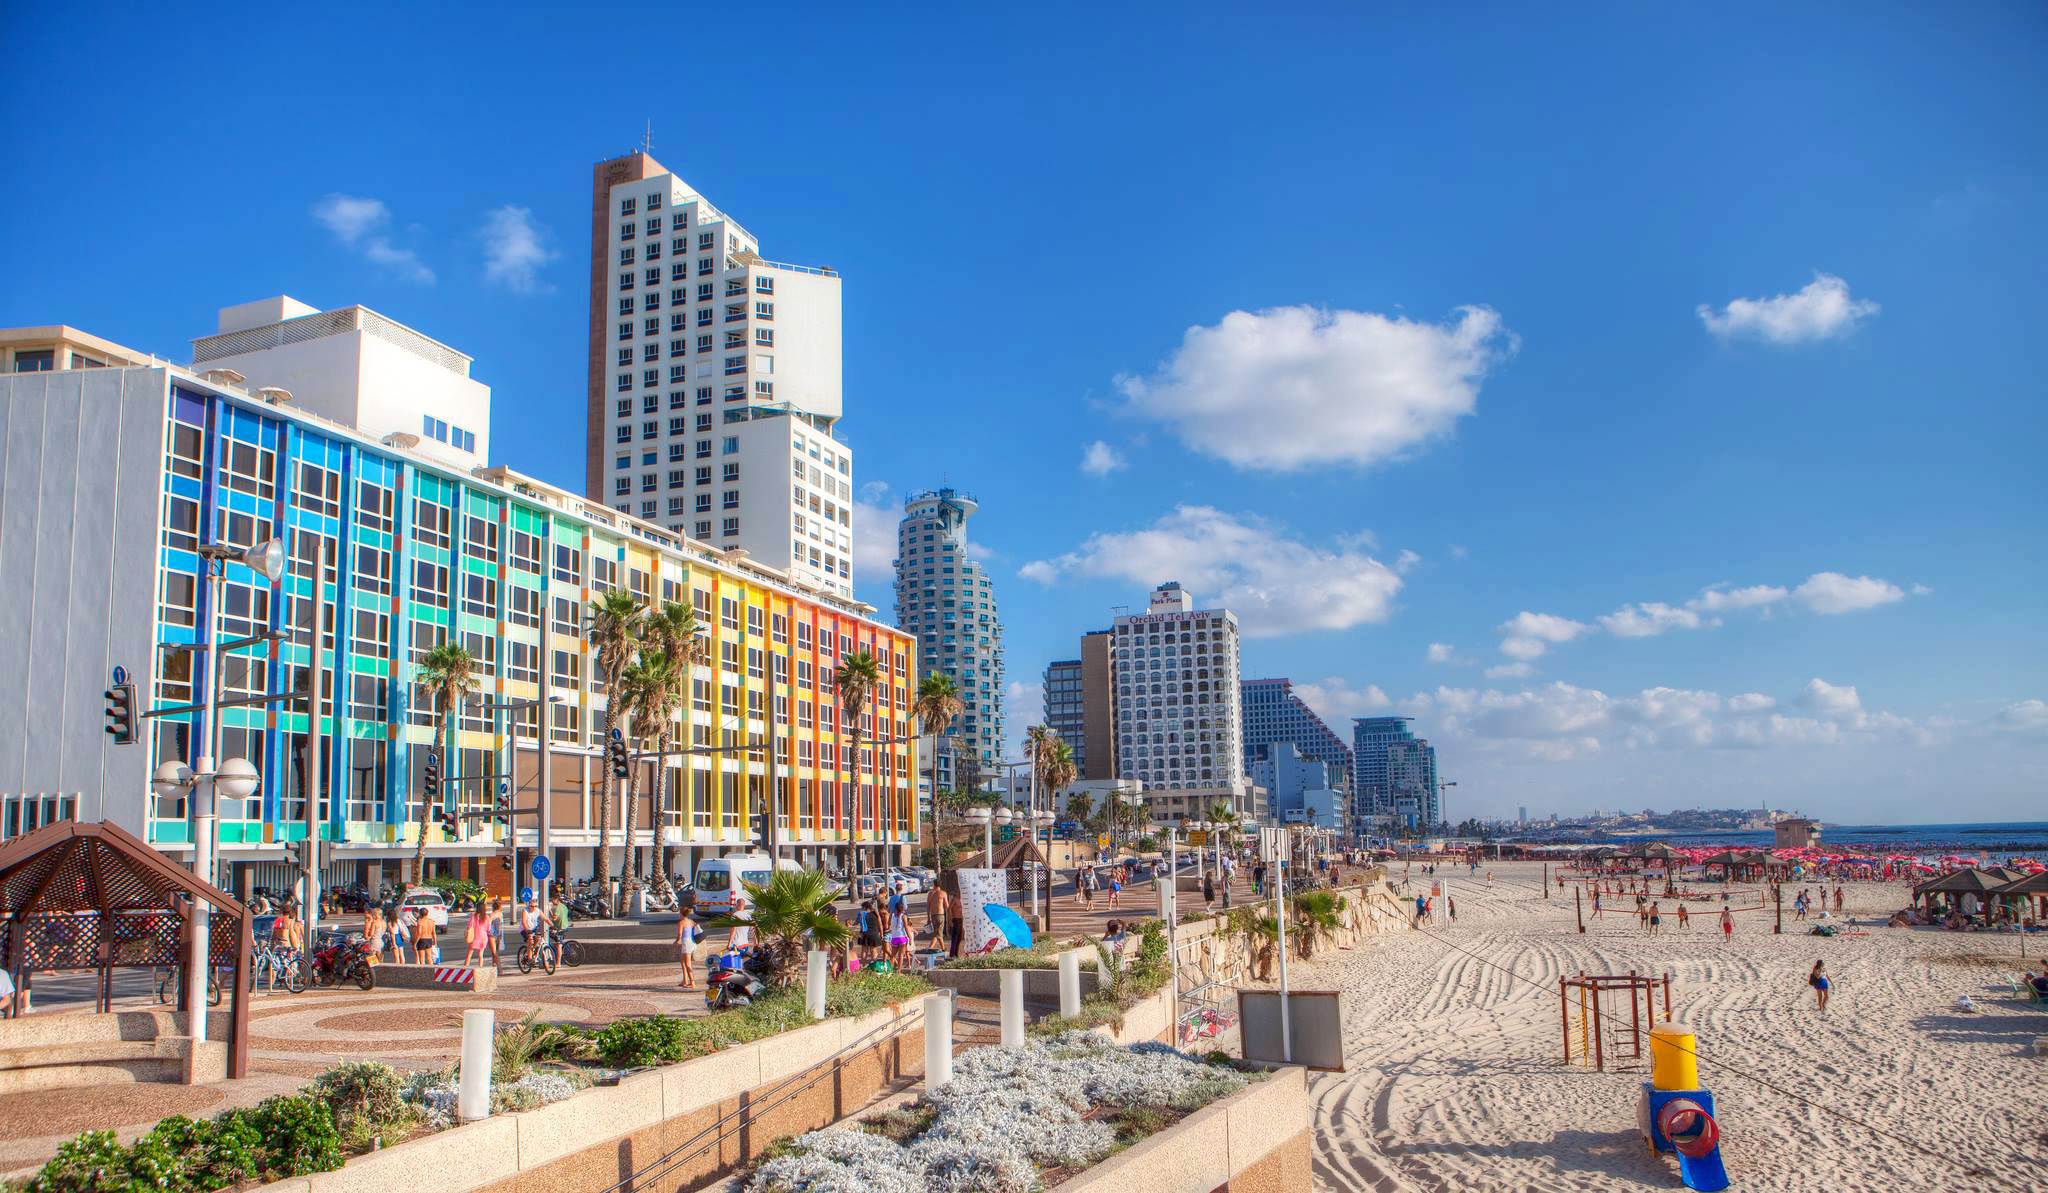 Tel Aviv – More Than Just A Party City